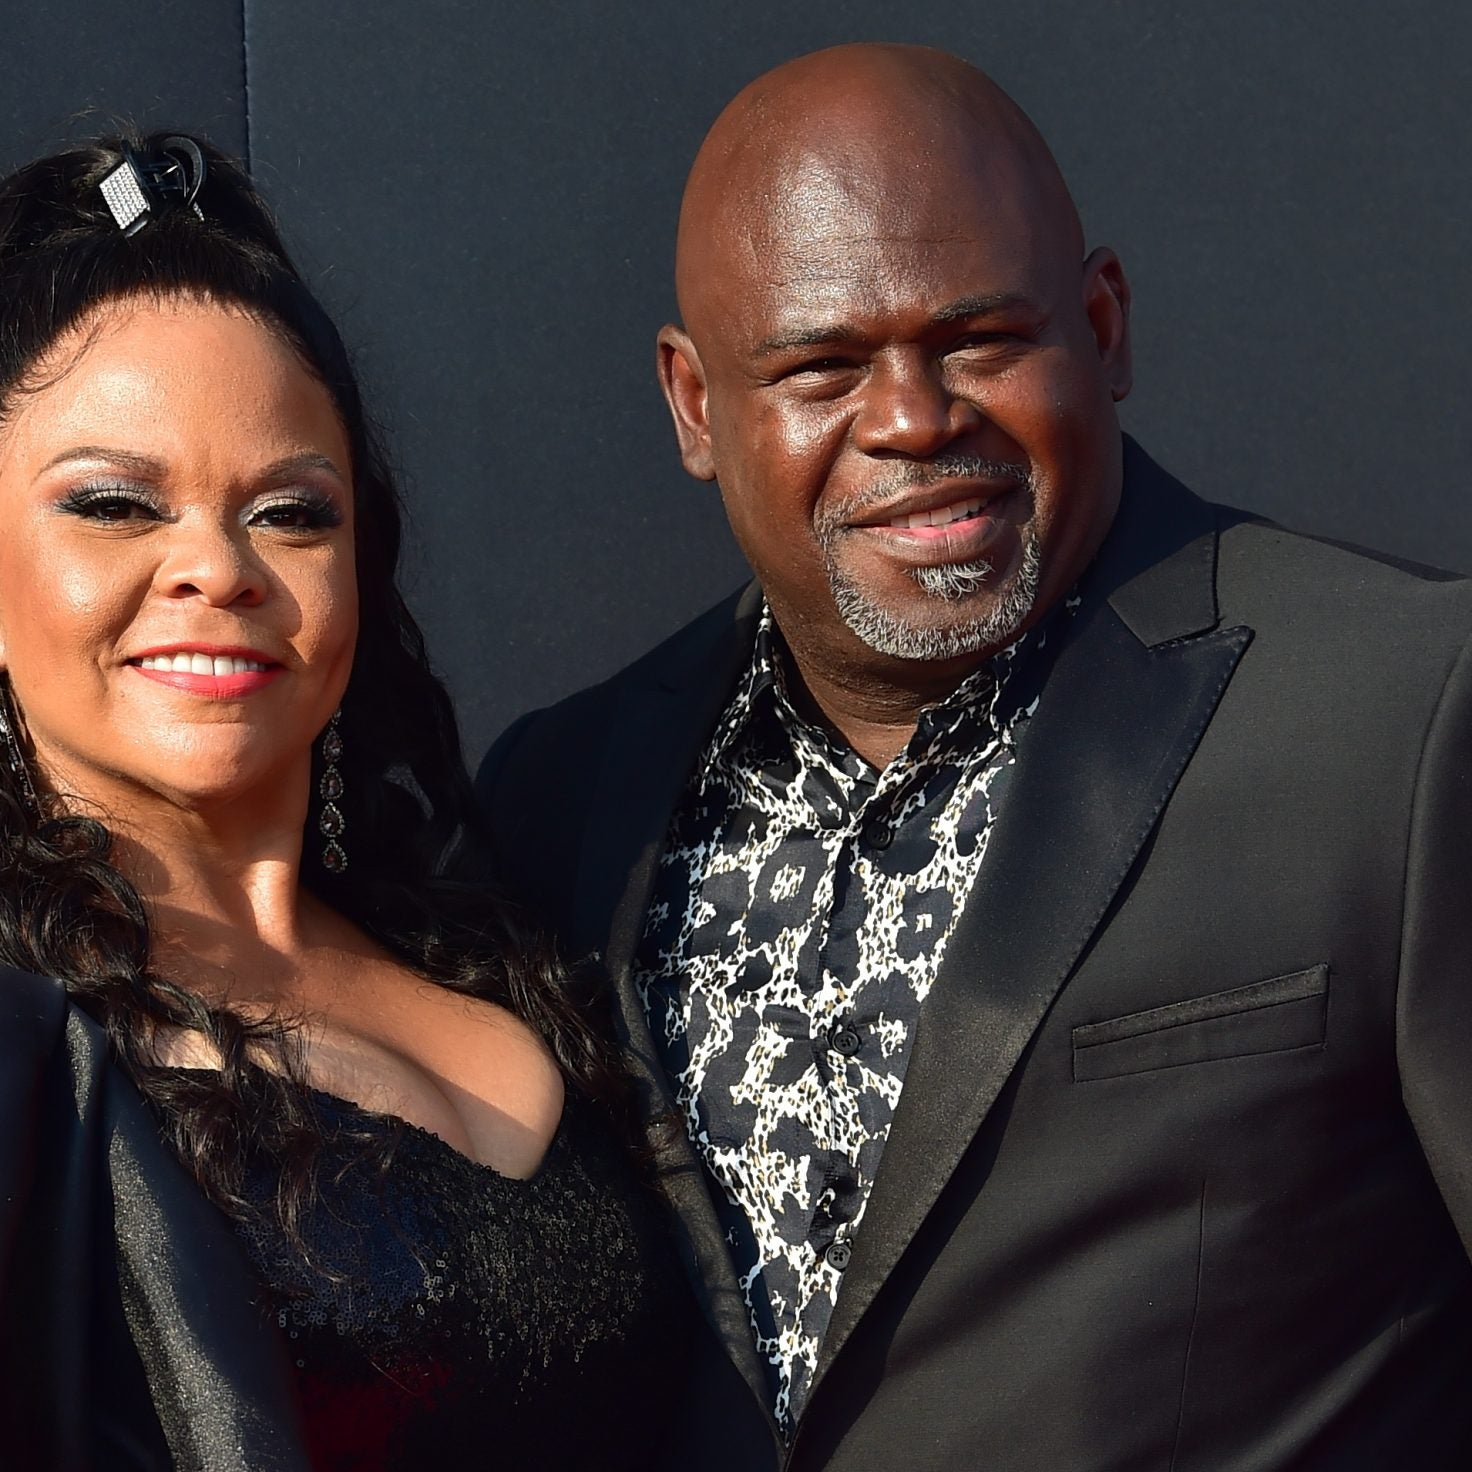 Tamela Mann Talks Getting Fit With Her Husband David's Support